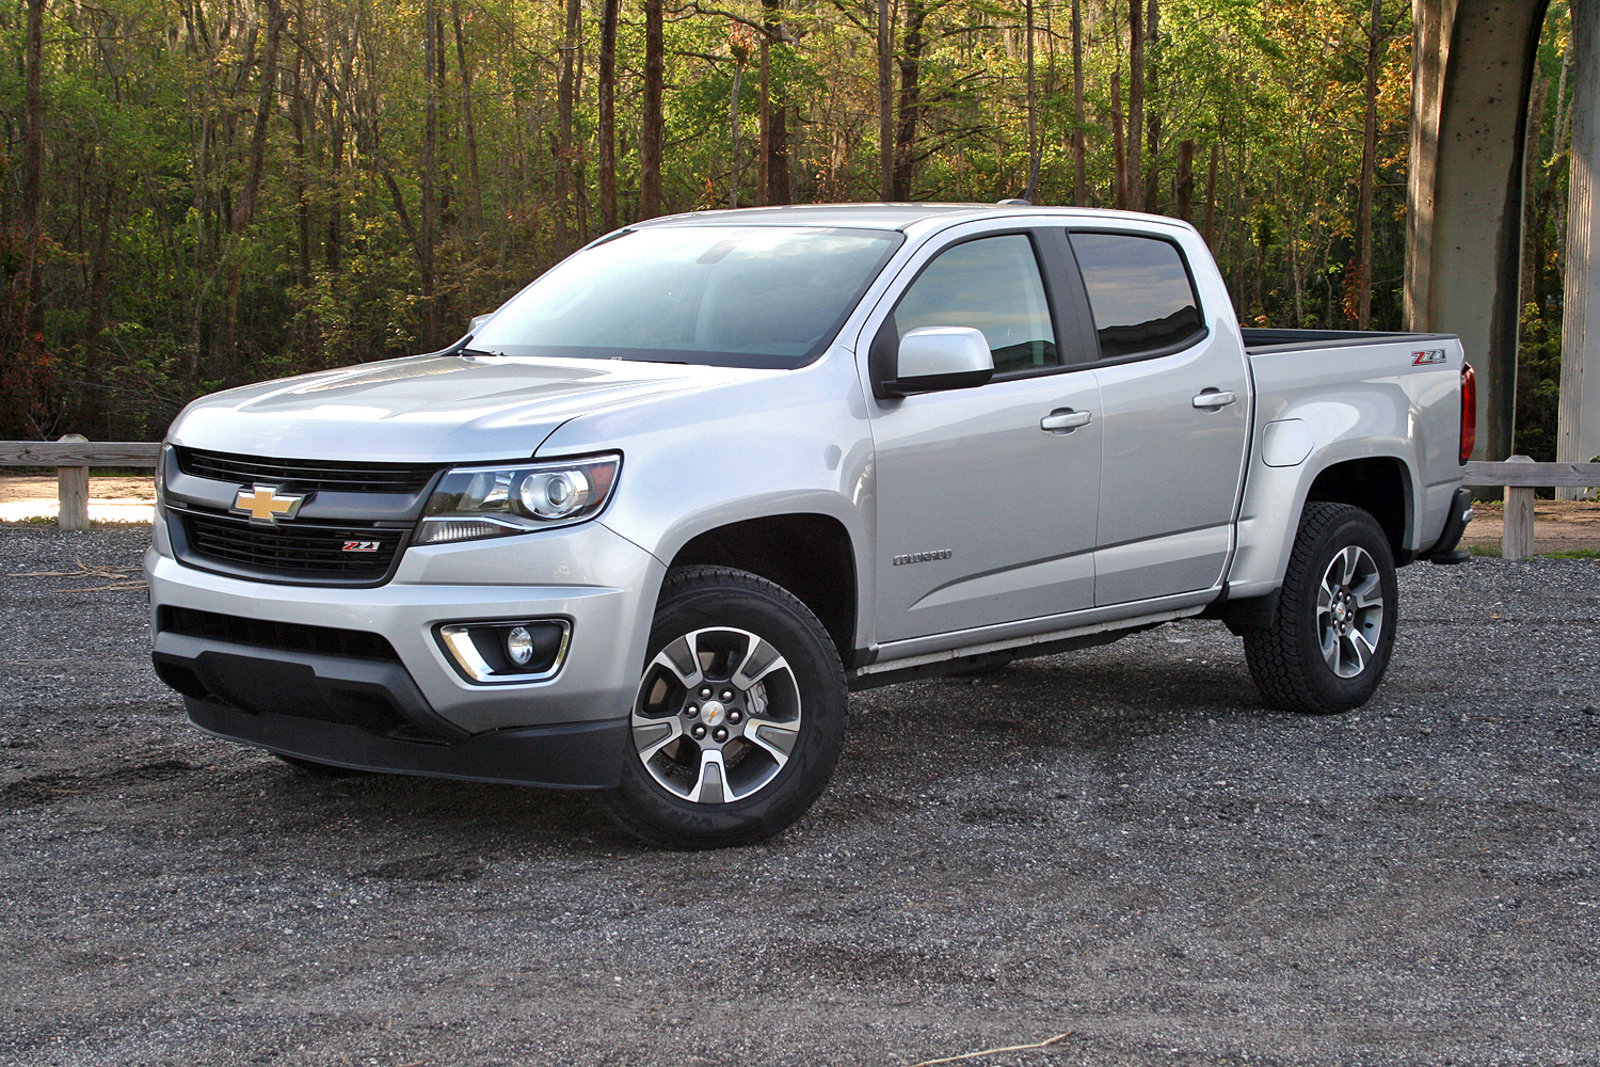 2015 Chevrolet Colorado Z71 - Driven Review - Top Speed